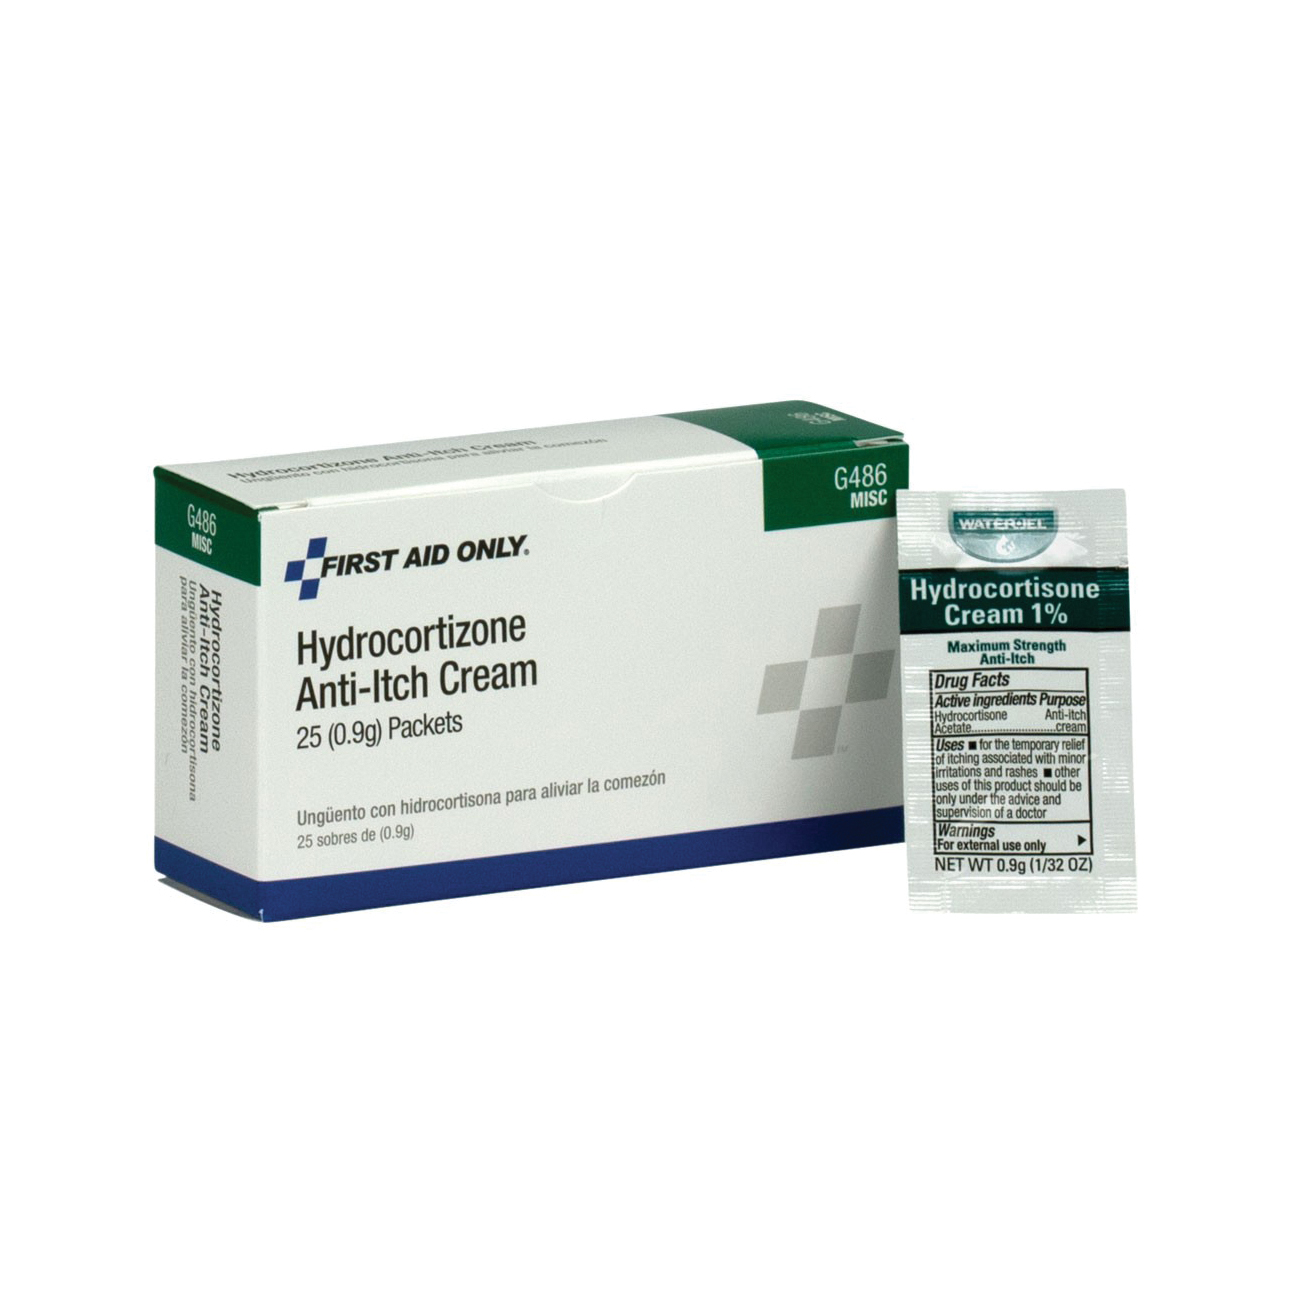 First Aid Only® G486 Hydrocortisone Cream, Unit Dose Pack Packing, Formula: 0.9 g Hydrocortisone Acetate